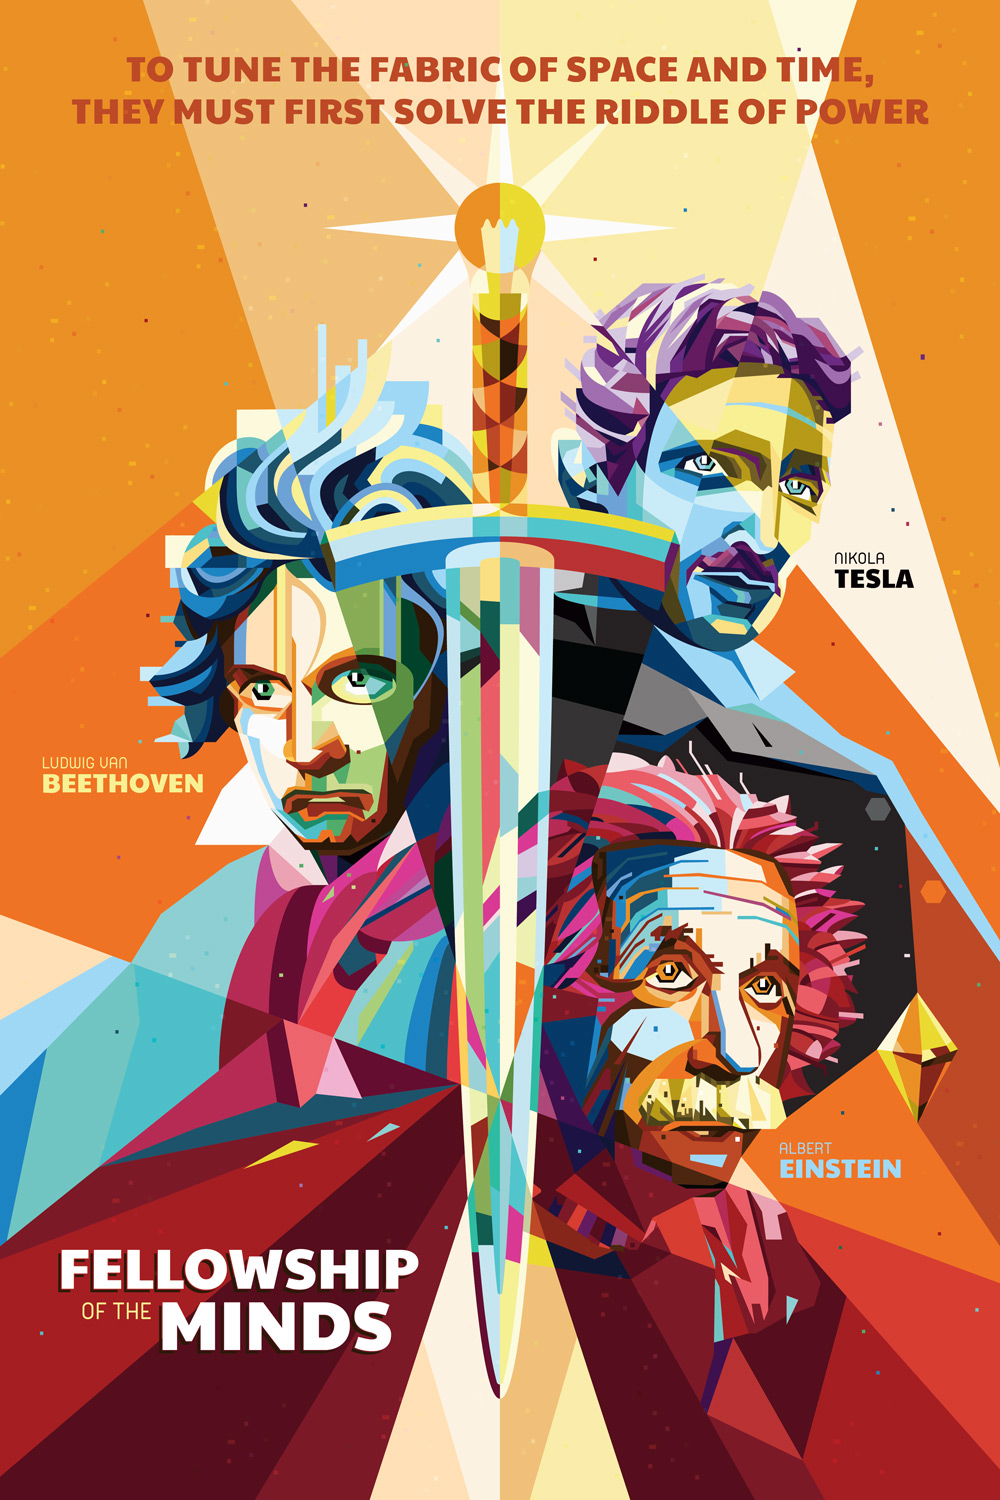 Fellowship of the Minds - An homage to these three geniuses from history. Even to this day they continue to inspire and shape our dreams and ambitions.